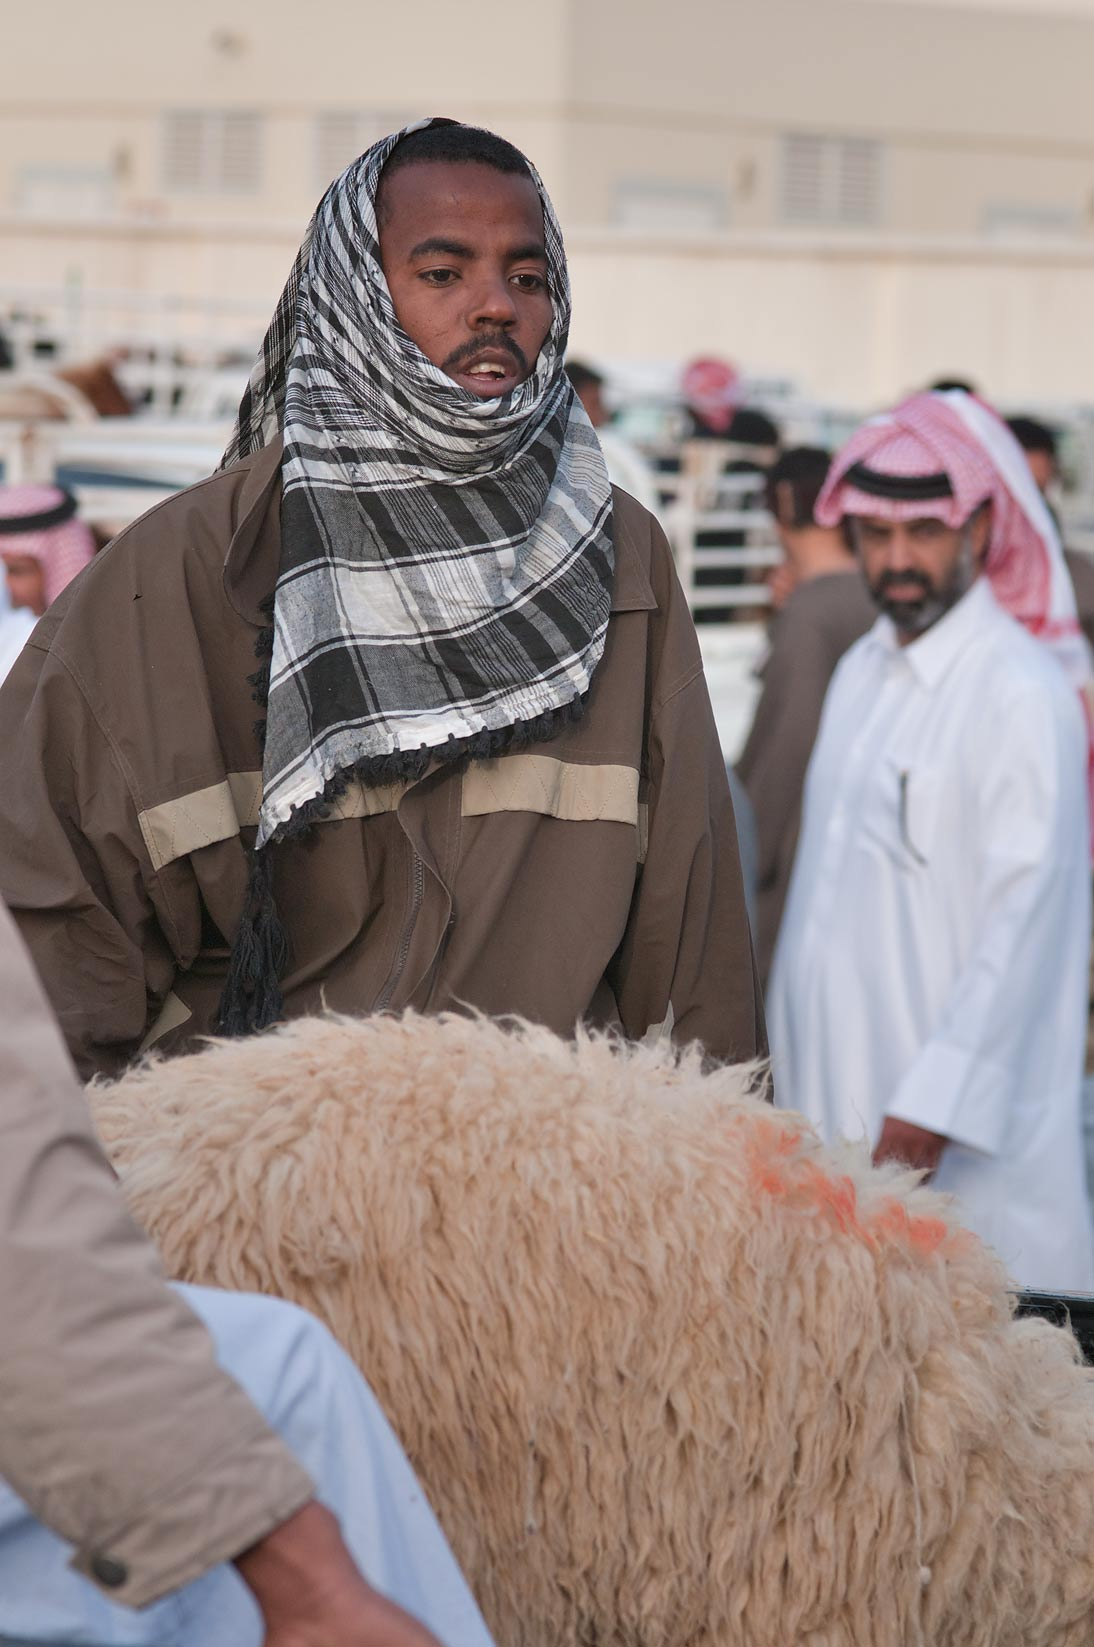 A person with a sheep in Sheep Market, Wholesale Markets area. Doha, Qatar